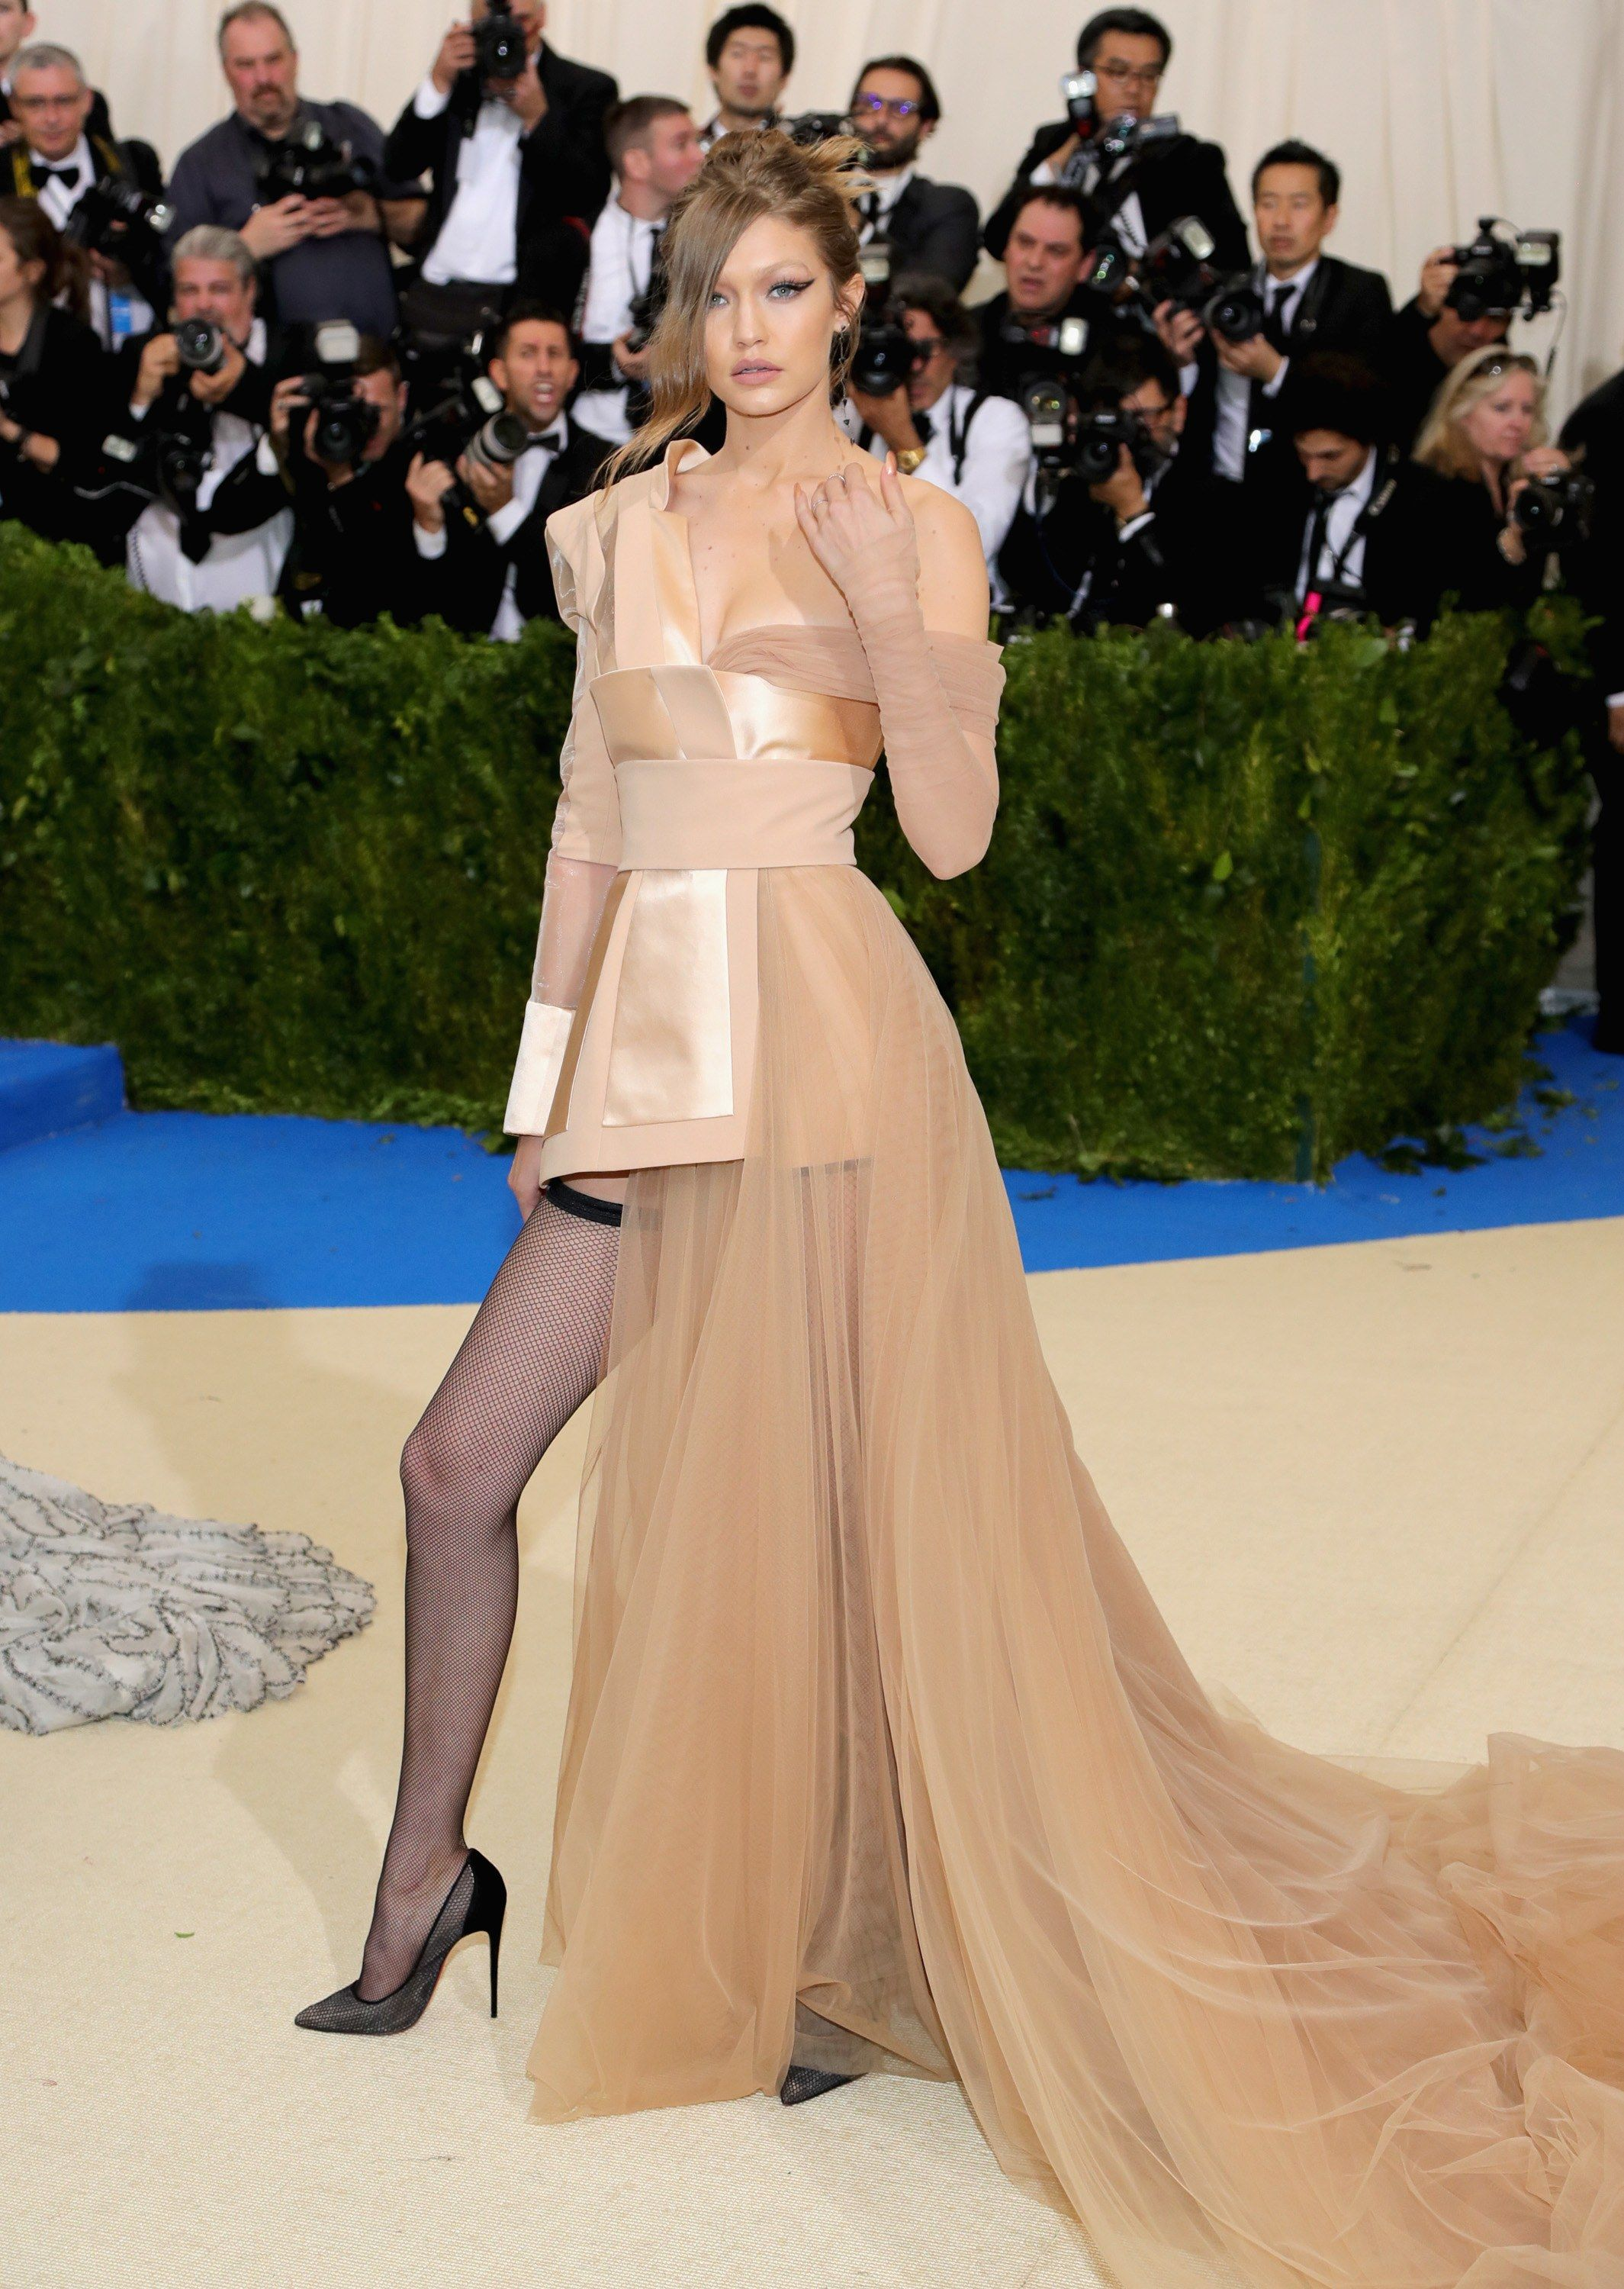 Met Gala 2017 Red Carpet Live All The Celebrity Dresses And Fashion Celebrity Dresses Gala Fashion Met Gala Outfits